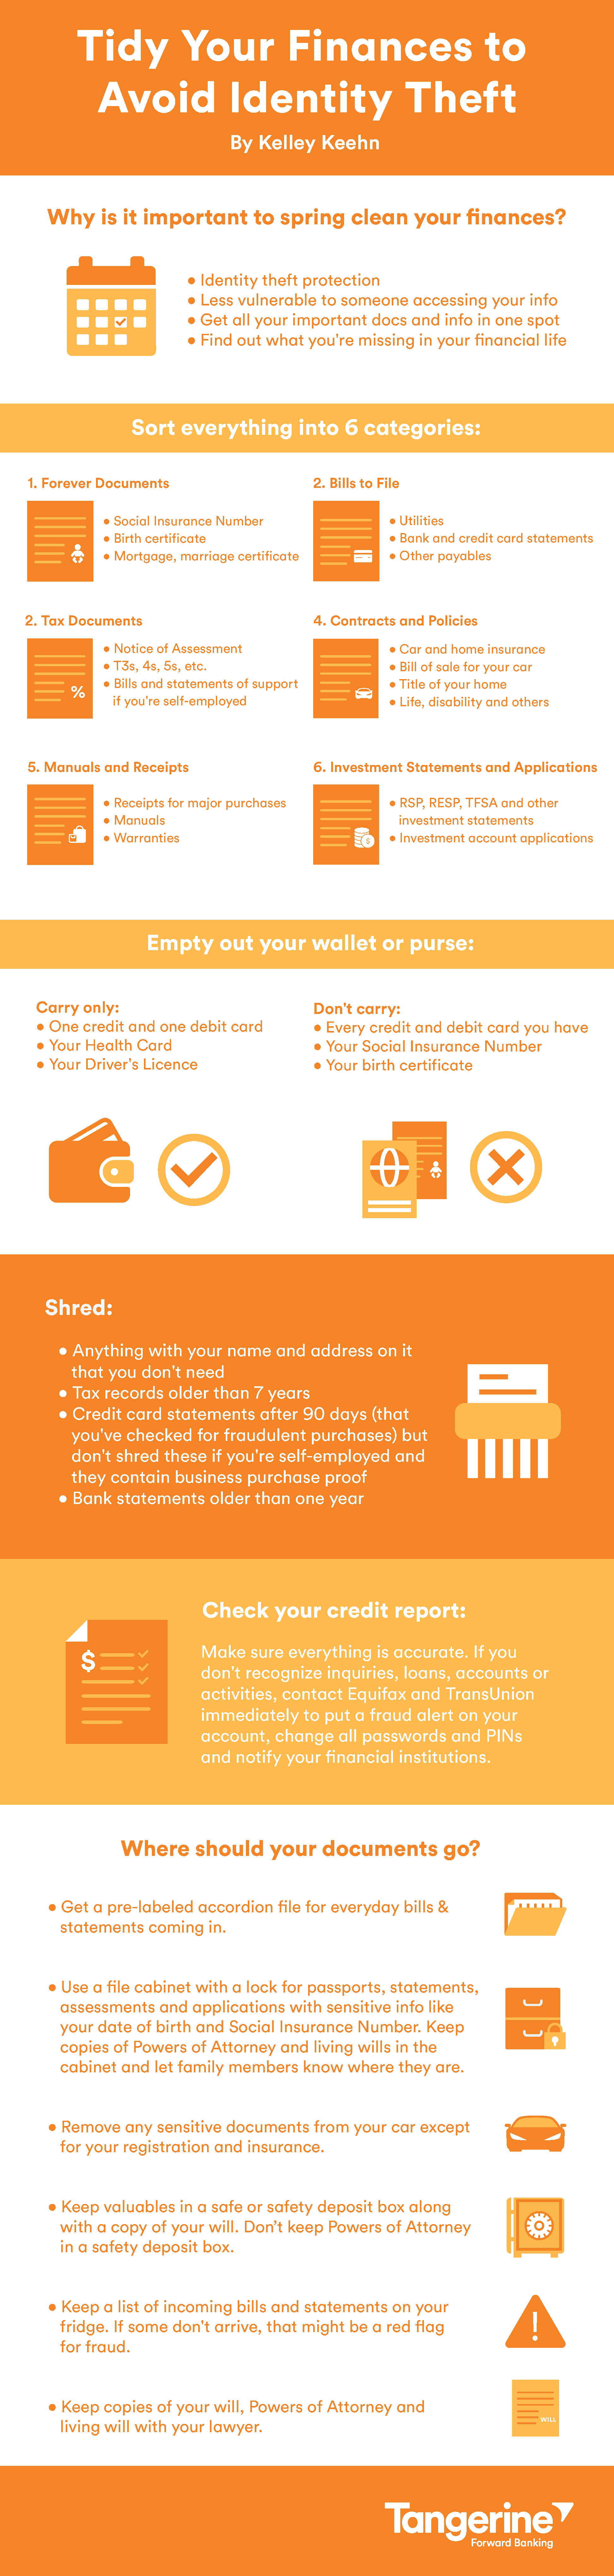 Tidy Your Finances to Avoid Identity Theft Infographic